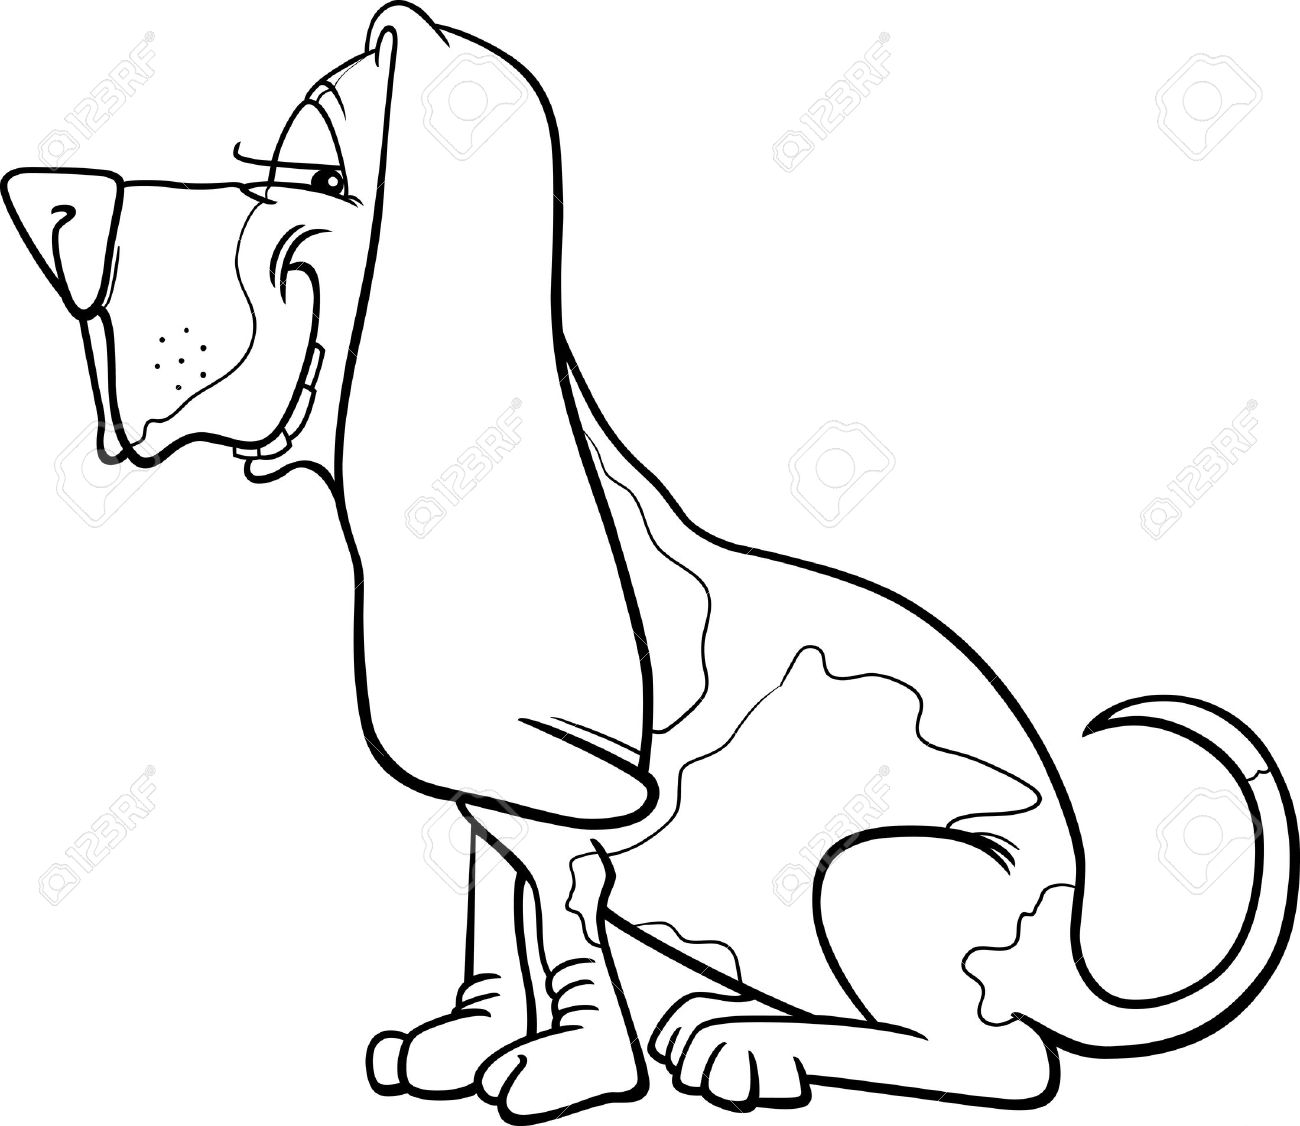 Cartoon Illustration of Funny Purebred Spotted Basset Hound Dog for Coloring Book Stock Vector - 16213936